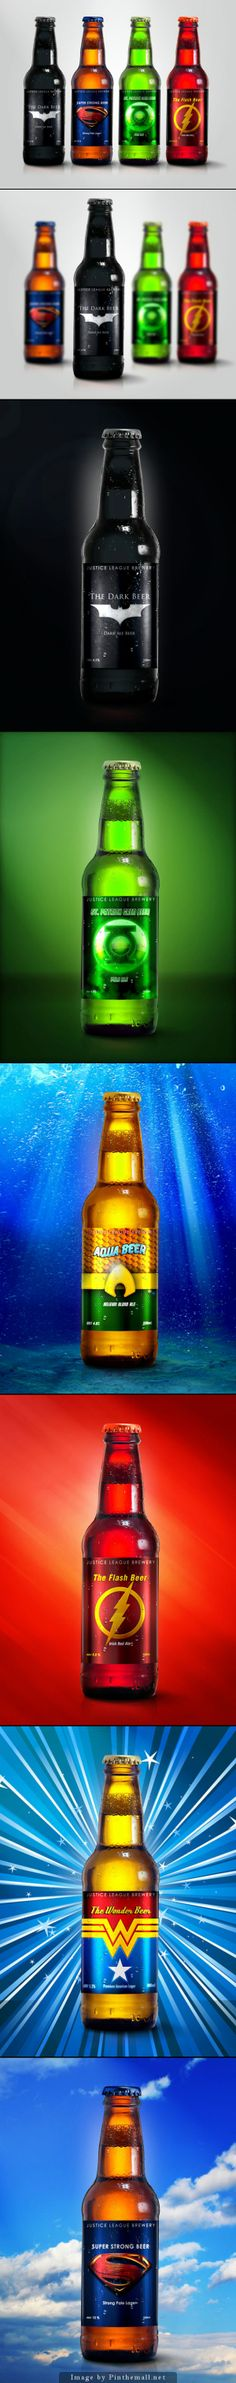 League of Justice Beer: Warning the Aqua beer is watered down!